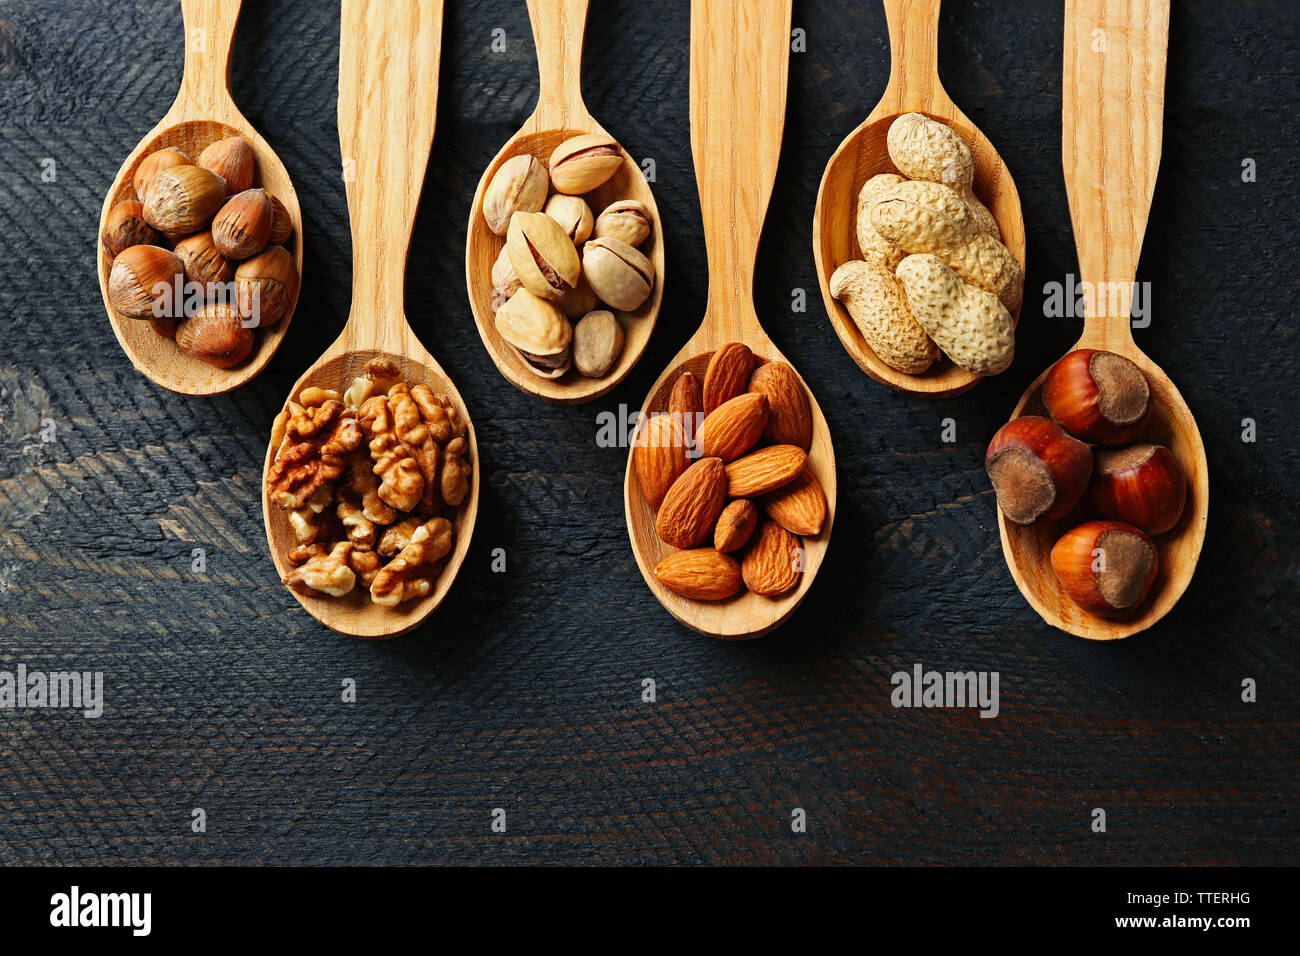 Spoons with hazelnuts, walnuts, pistachios, almonds, acorns and peanuts, on grey wooden background Stock Photo